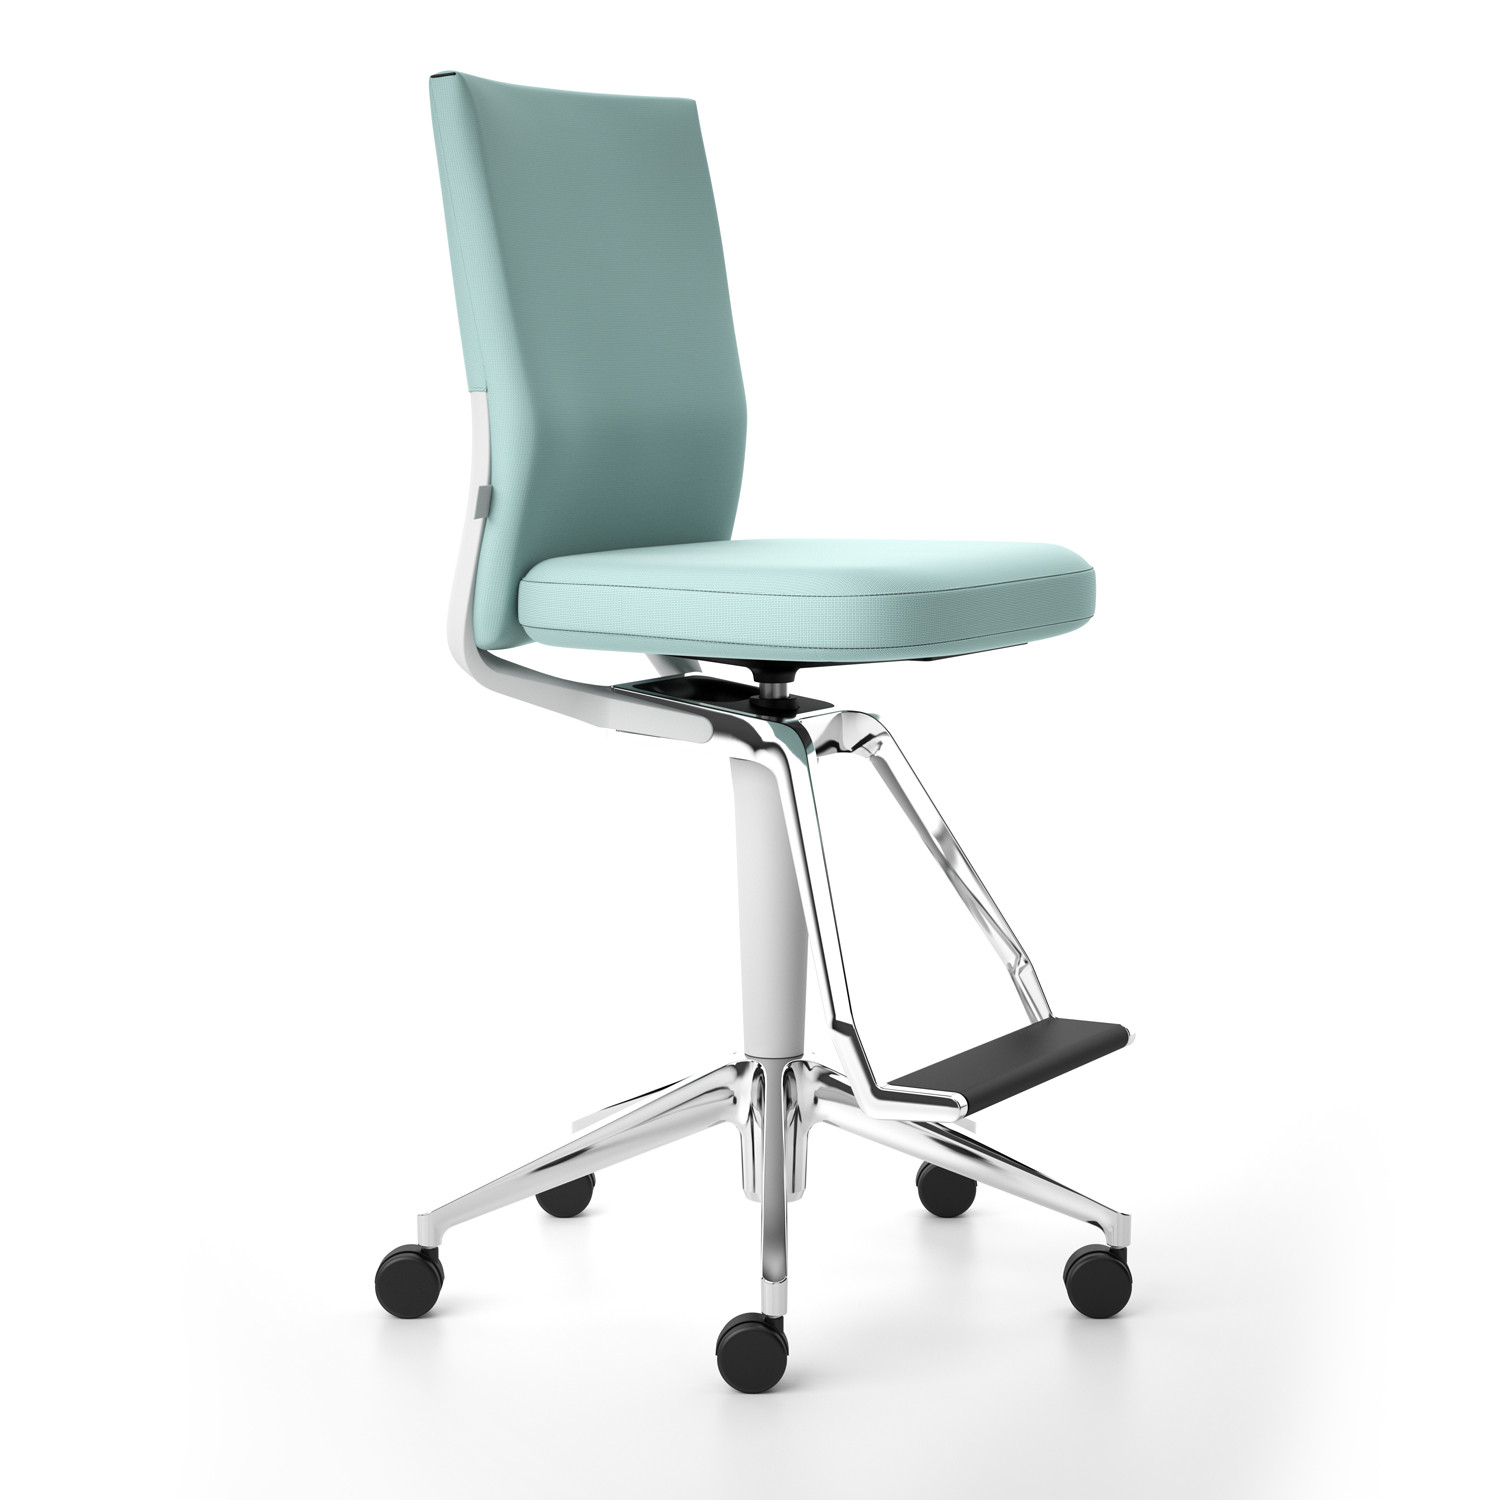 vitra office chair price barcelona mies van der rohe id high concept apres furniture